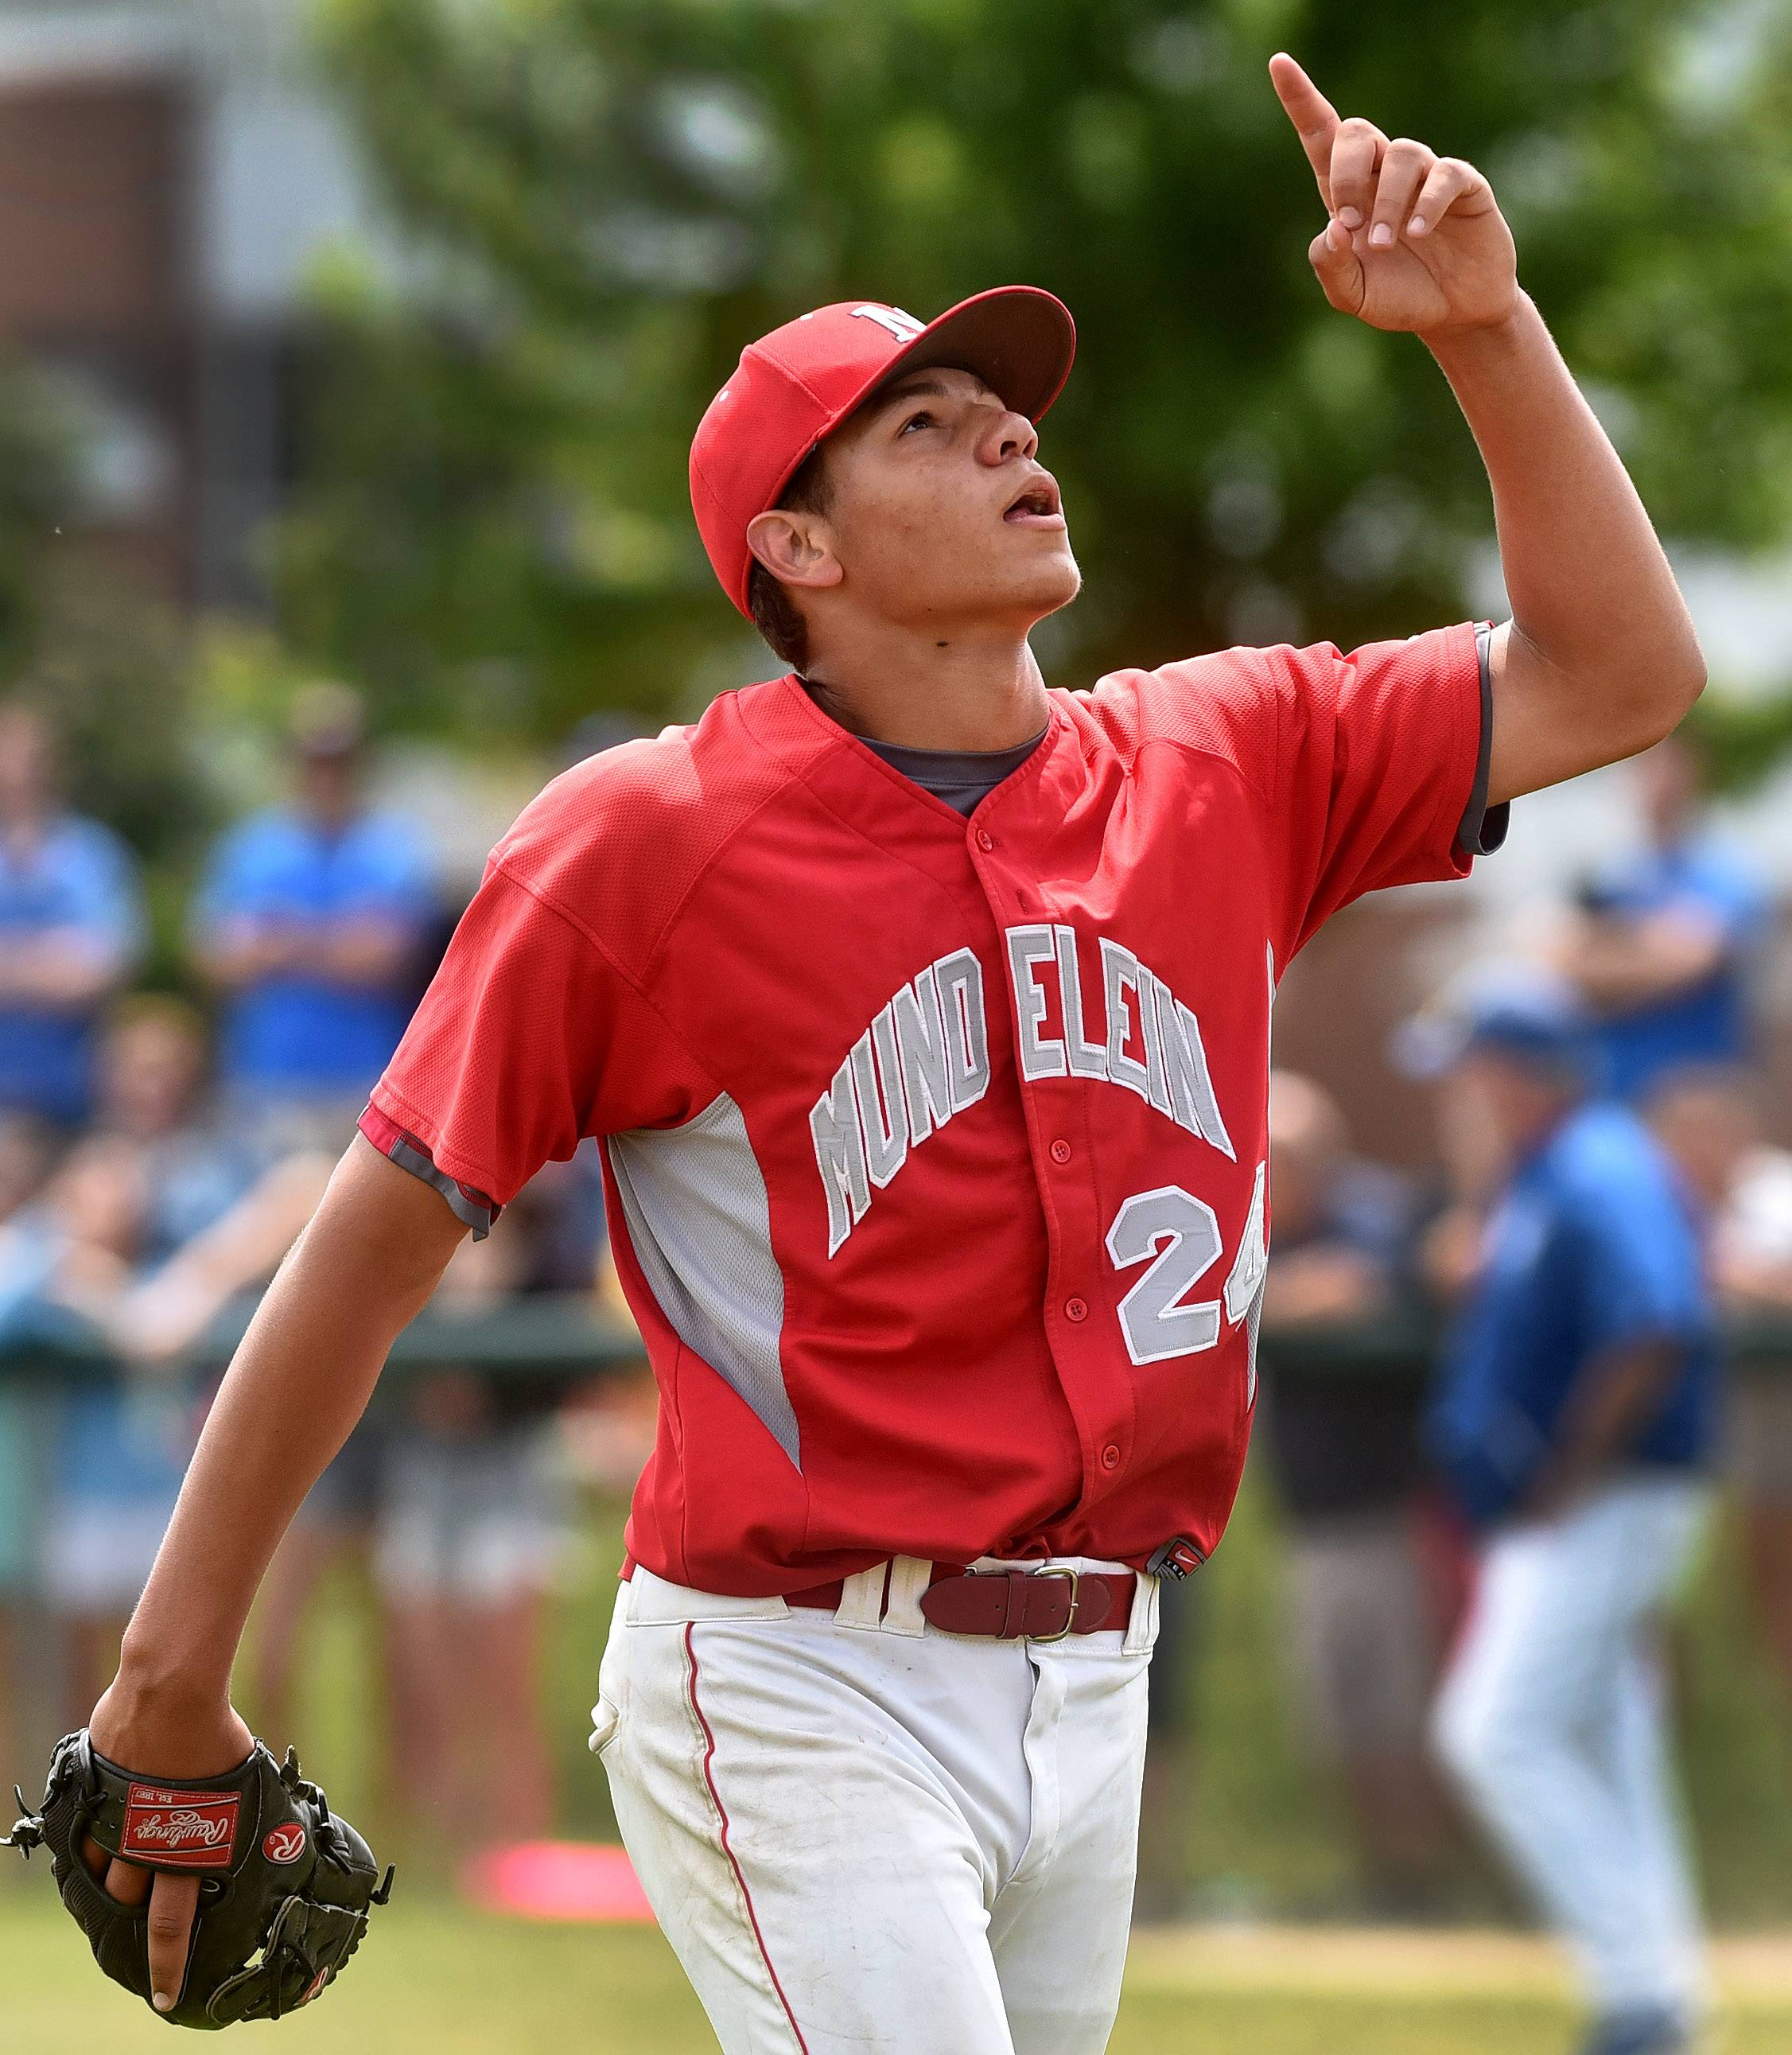 Steven Sanchez points to the sky and leaves the game after pitching no-hit ball during Class 4A Glenbrook South sectional final between Mundelein and Warren.